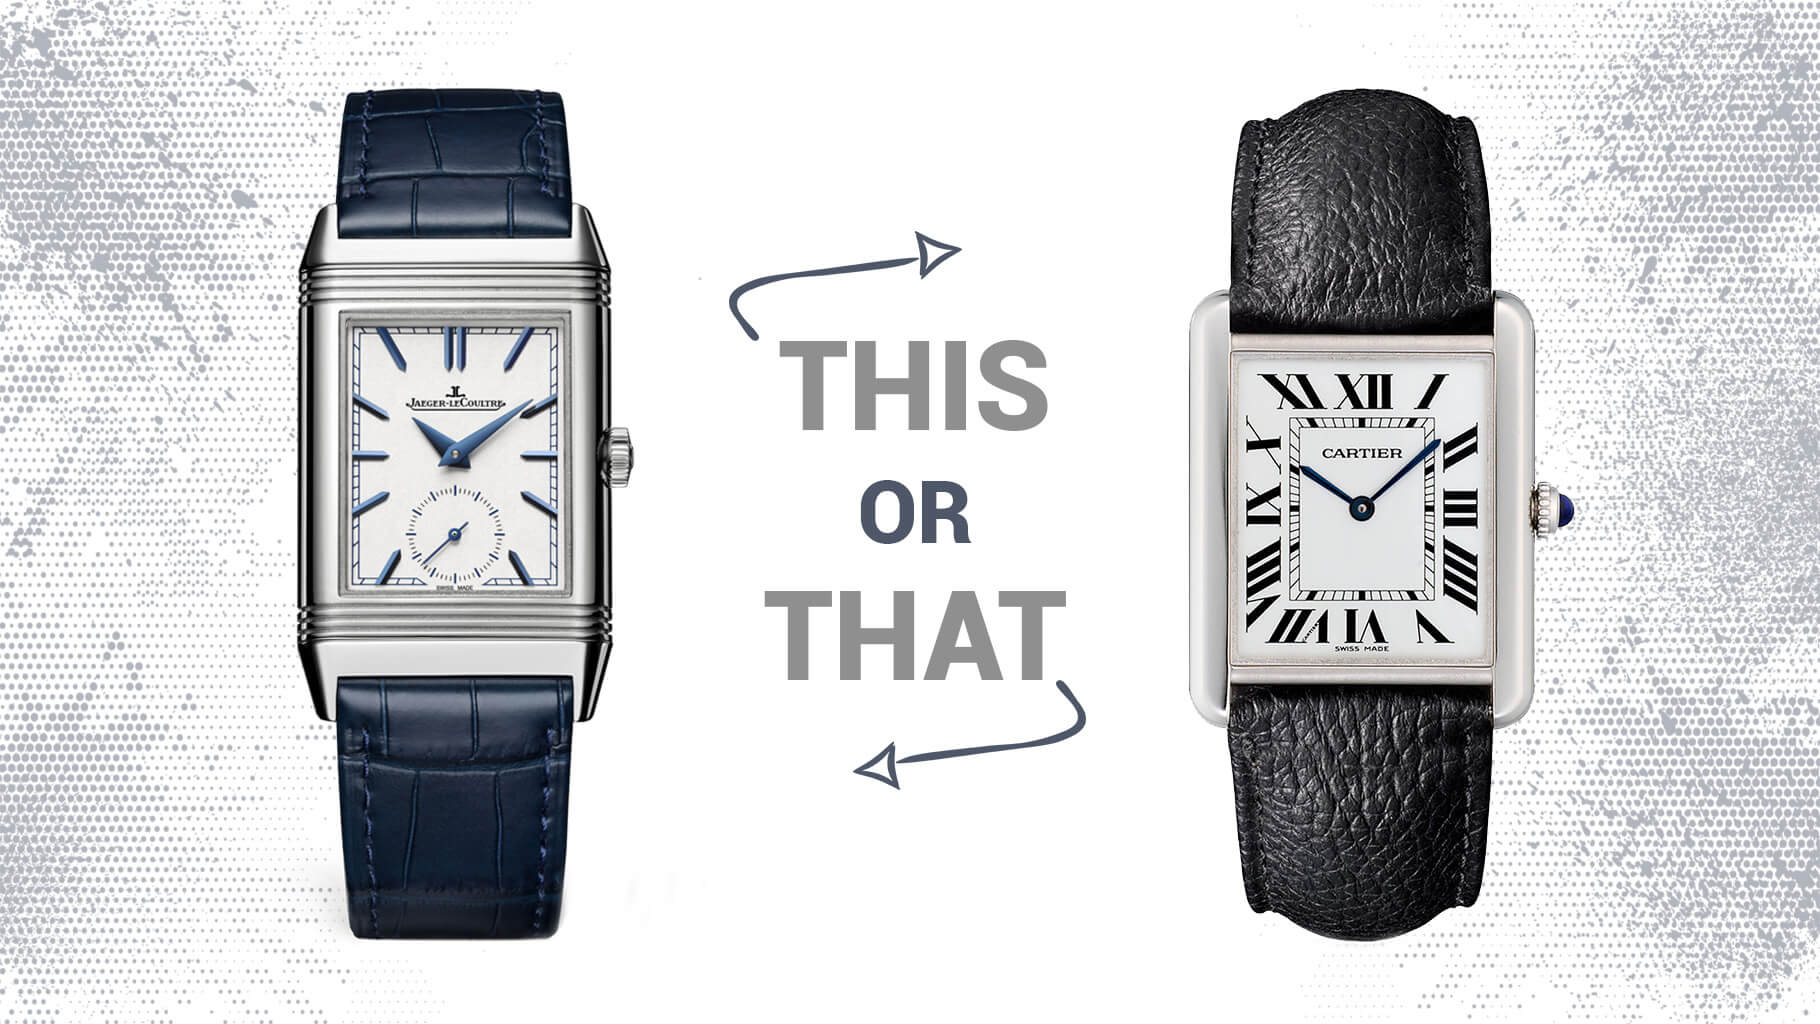 Watch 101: This or That – Jaeger LeCoultre Reverso vs. Cartier Tank